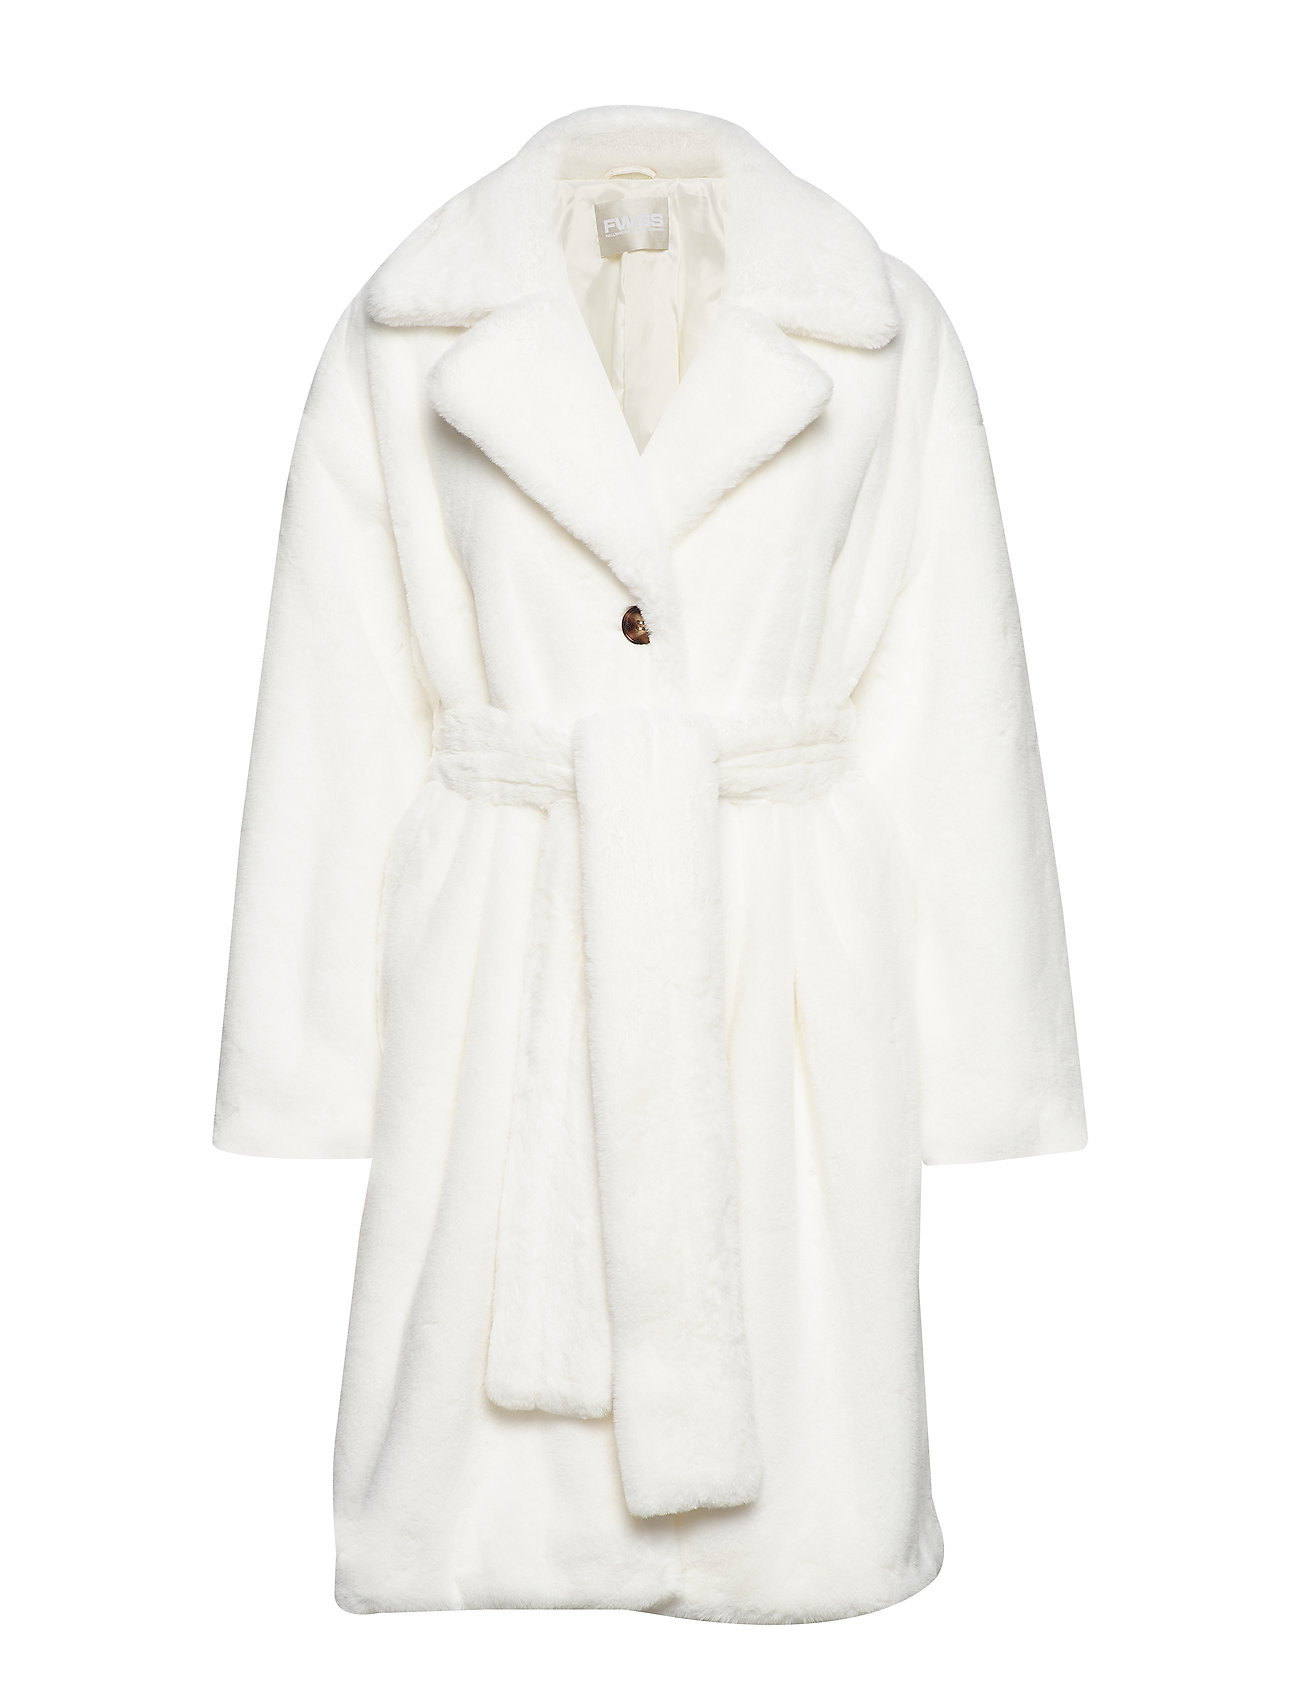 Fall Winter Spring Summer Stina - JET STREAM WHITE